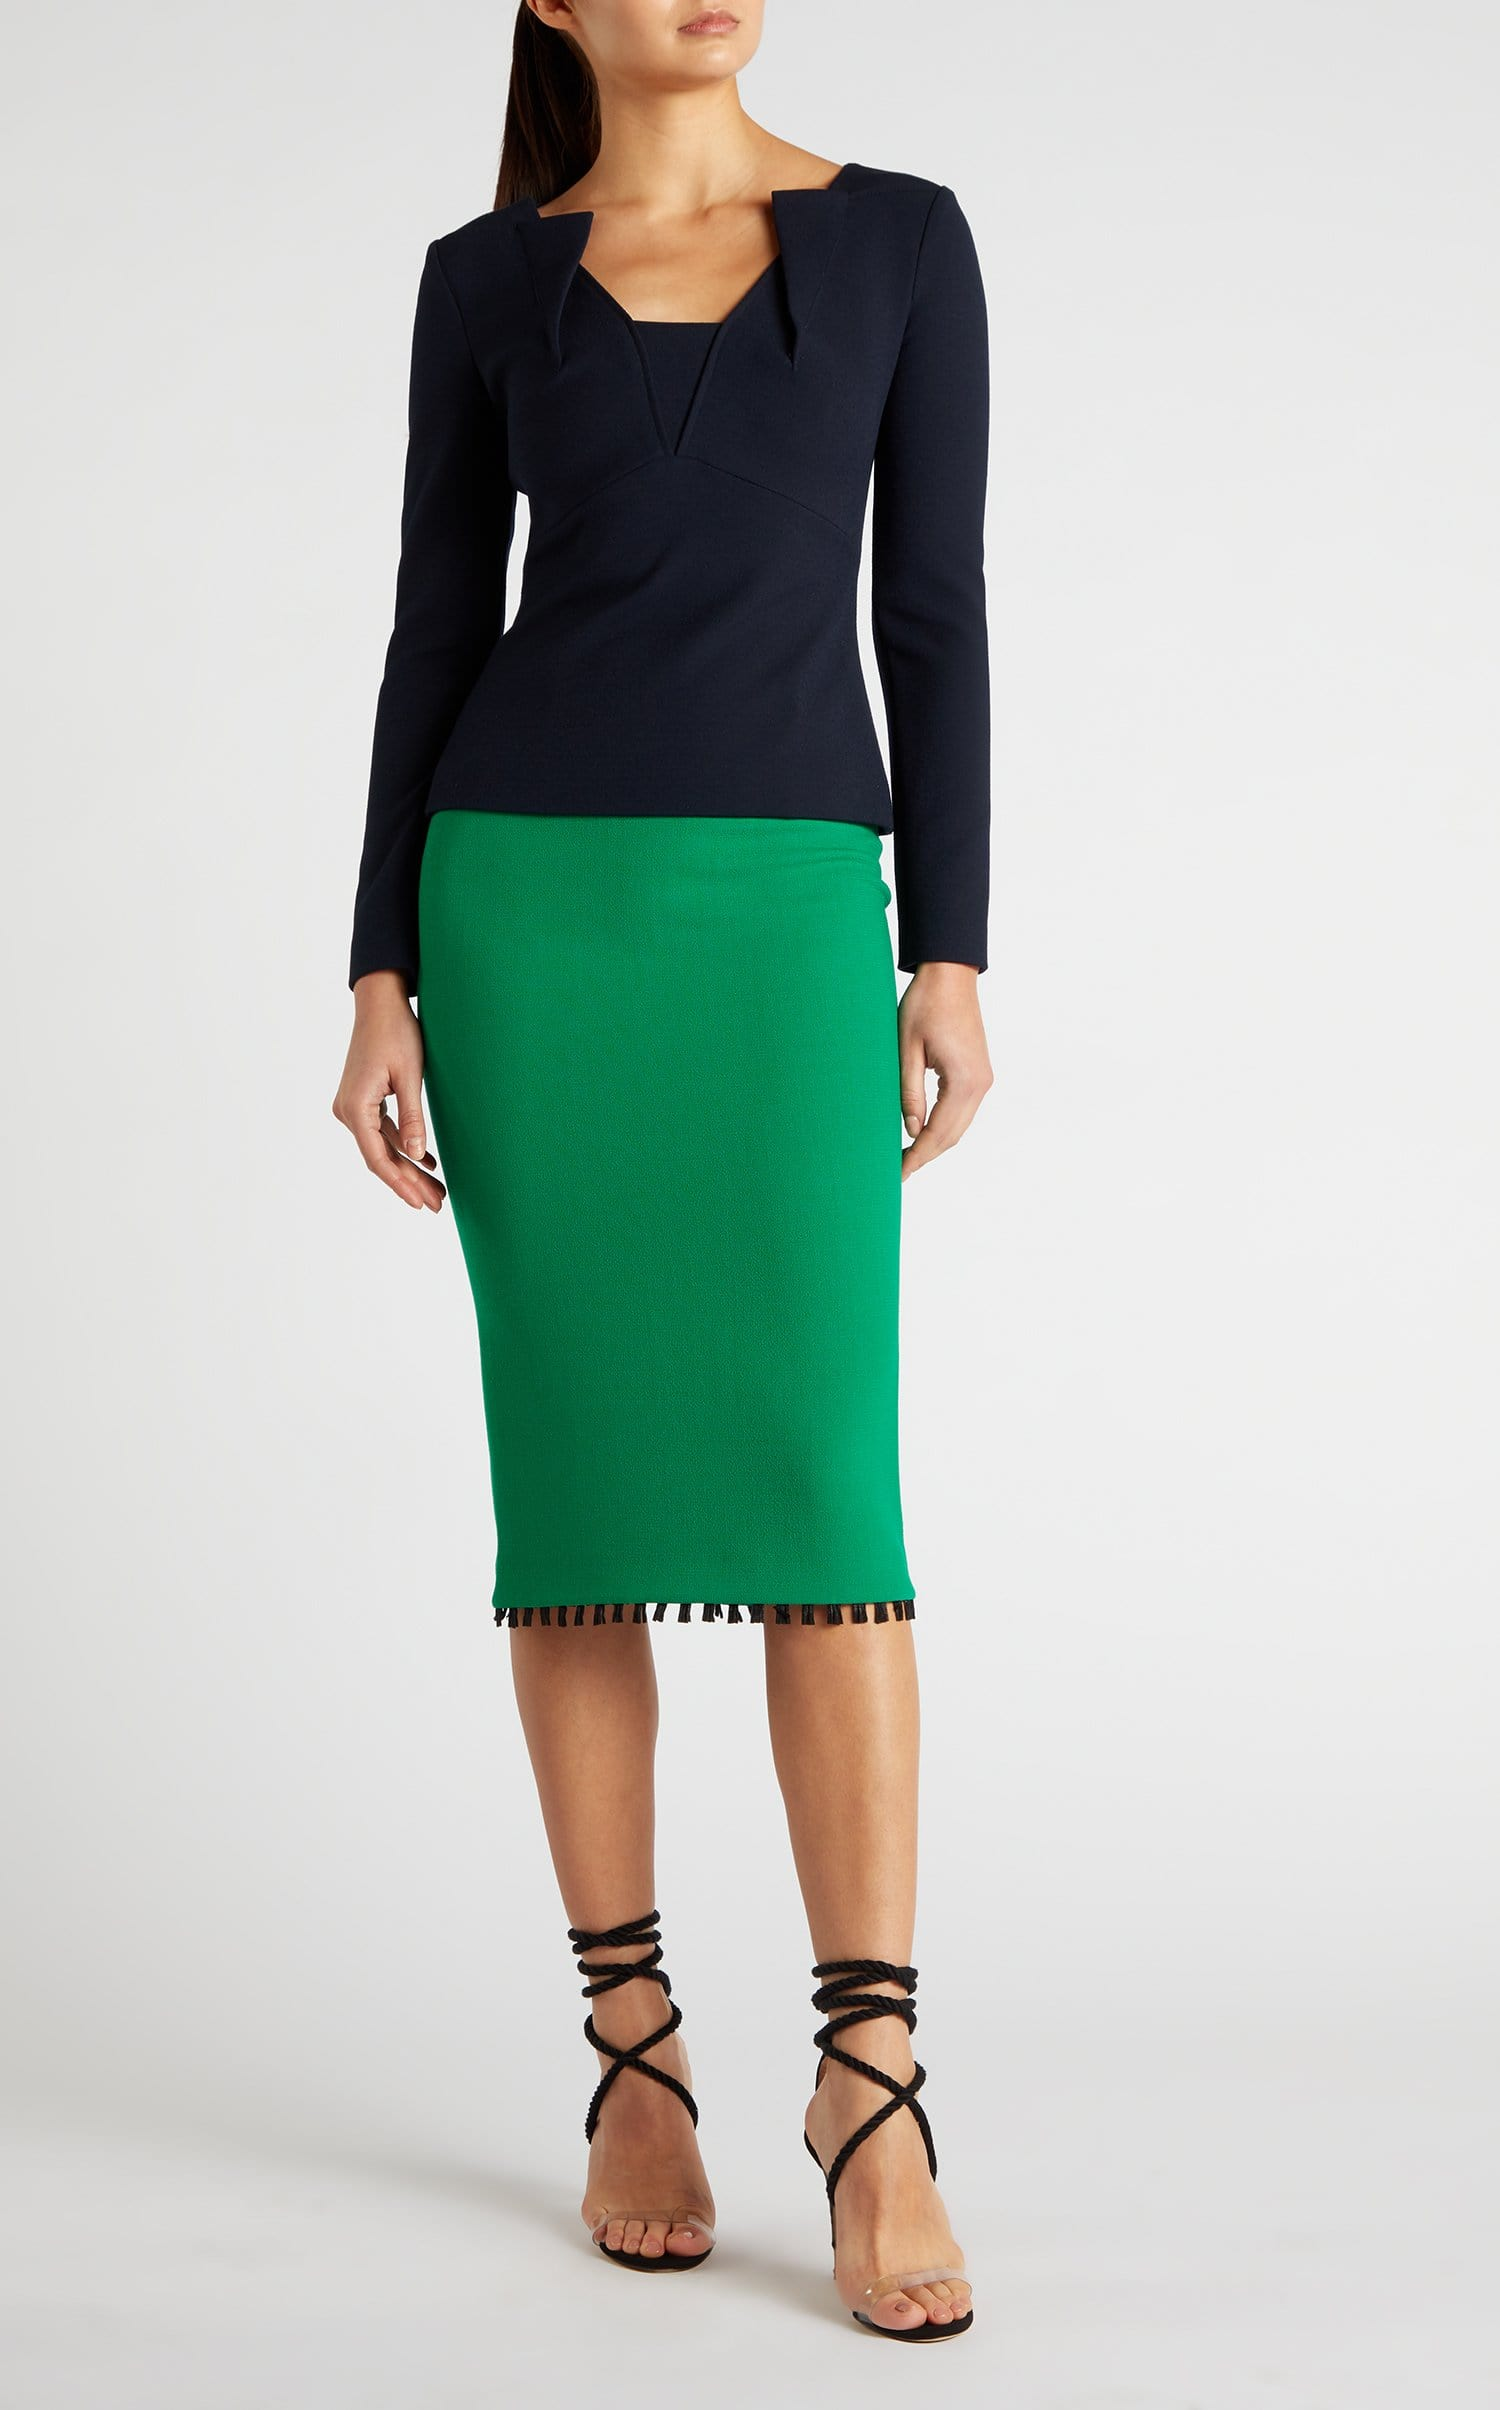 756ba1140a Arreton Skirt In Emerald/Black from Roland Mouret